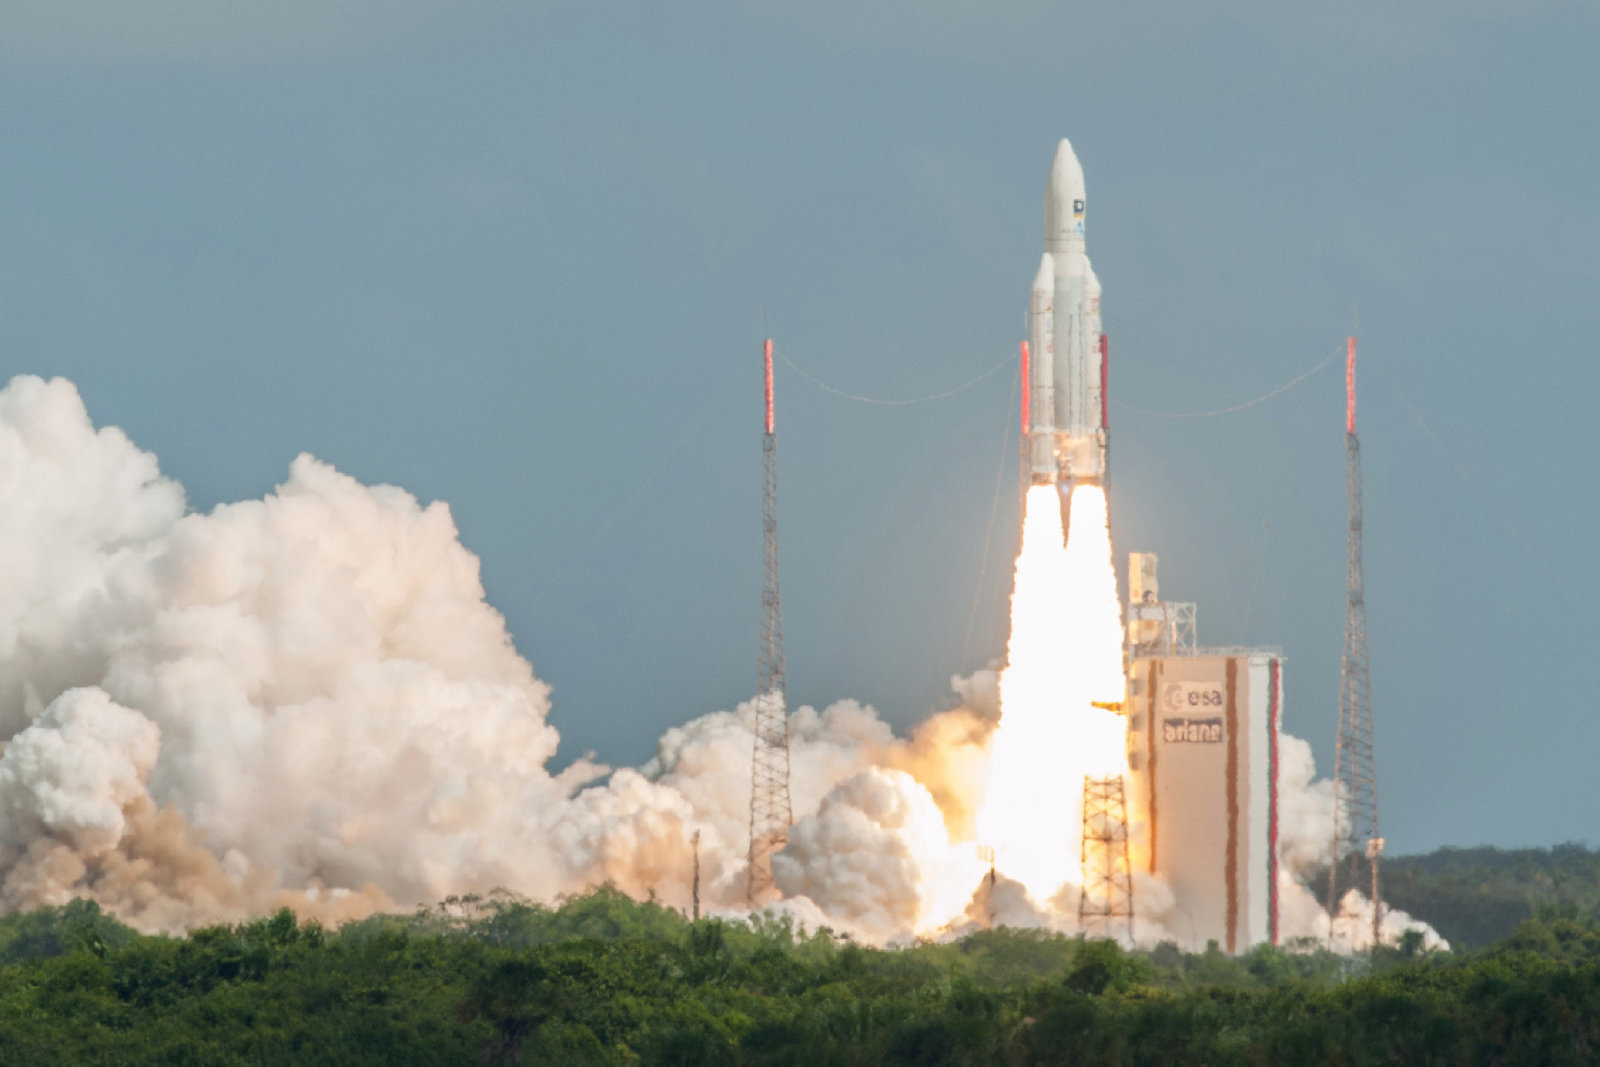 This photo taken and handout on November 17, 2016 by the European Space Agency (ESA), the Centre national d'etudes spatiale (CNES, the French government space agency) and the Arianespace  satellite launch company shows an Ariane 5 space rocket with a payload of four Galileo satellites lifting off from ESA's European Spaceport in Kourou, French Guiana, on November 17, 2016.  Ariane 5 successfully launched on November 17 four satellites which will be part of the Galileo global satellite navigation system. / AFP / ESA/CNES/ARIANESPACE / S. MARTIN        (Photo credit should read S. MARTIN/AFP/Getty Images)